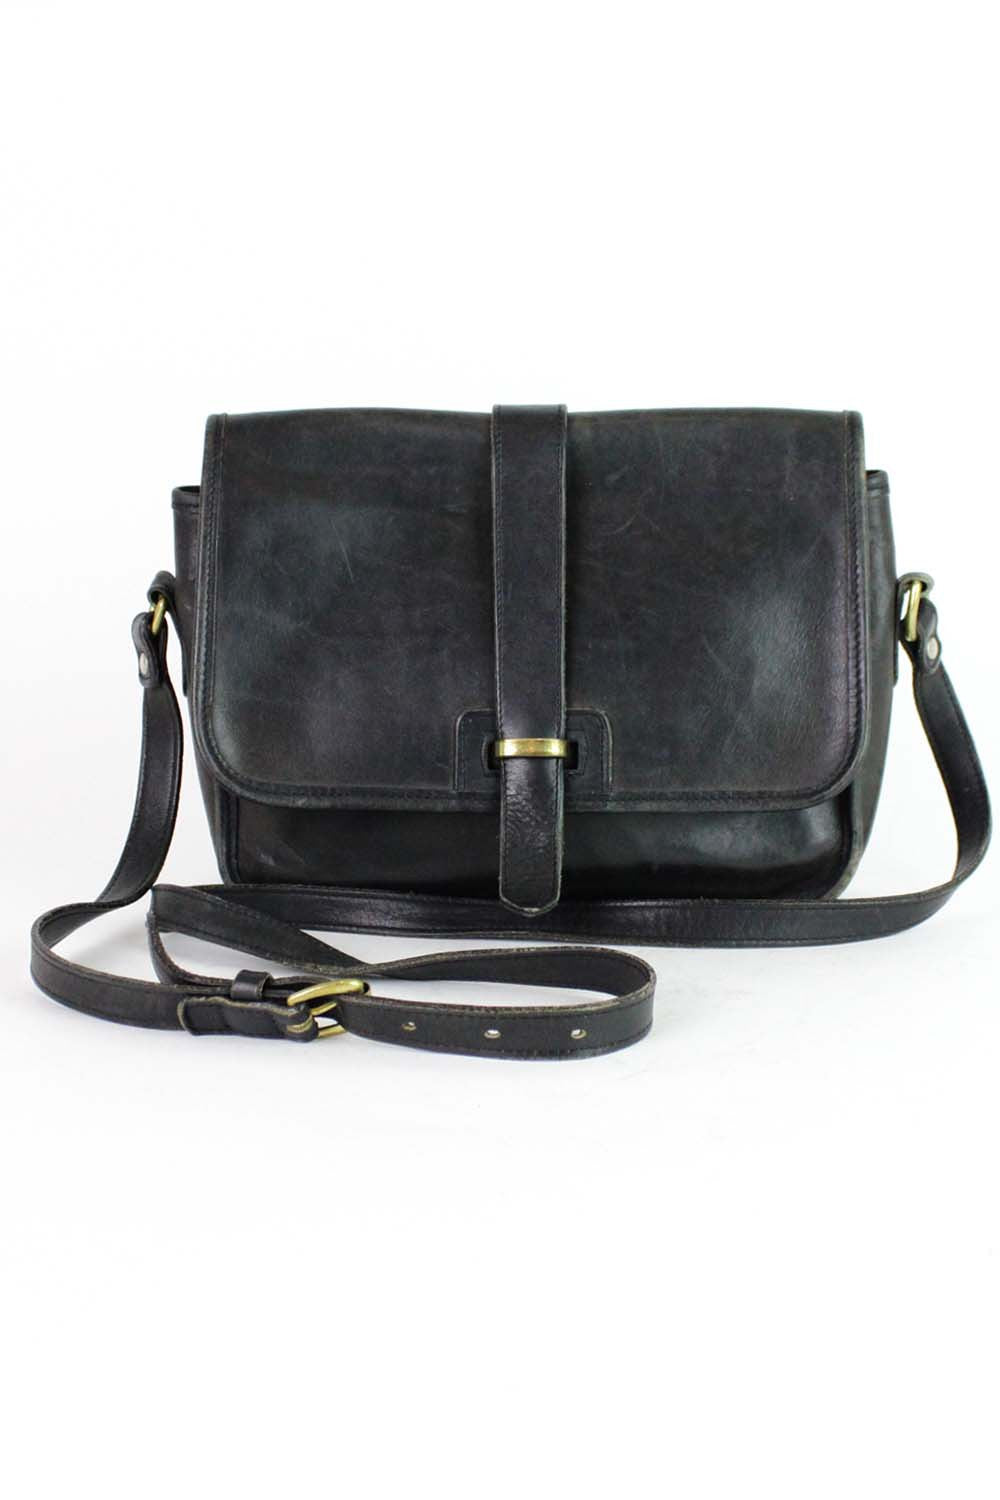 Lands End Black Leather Crossbody Satchel